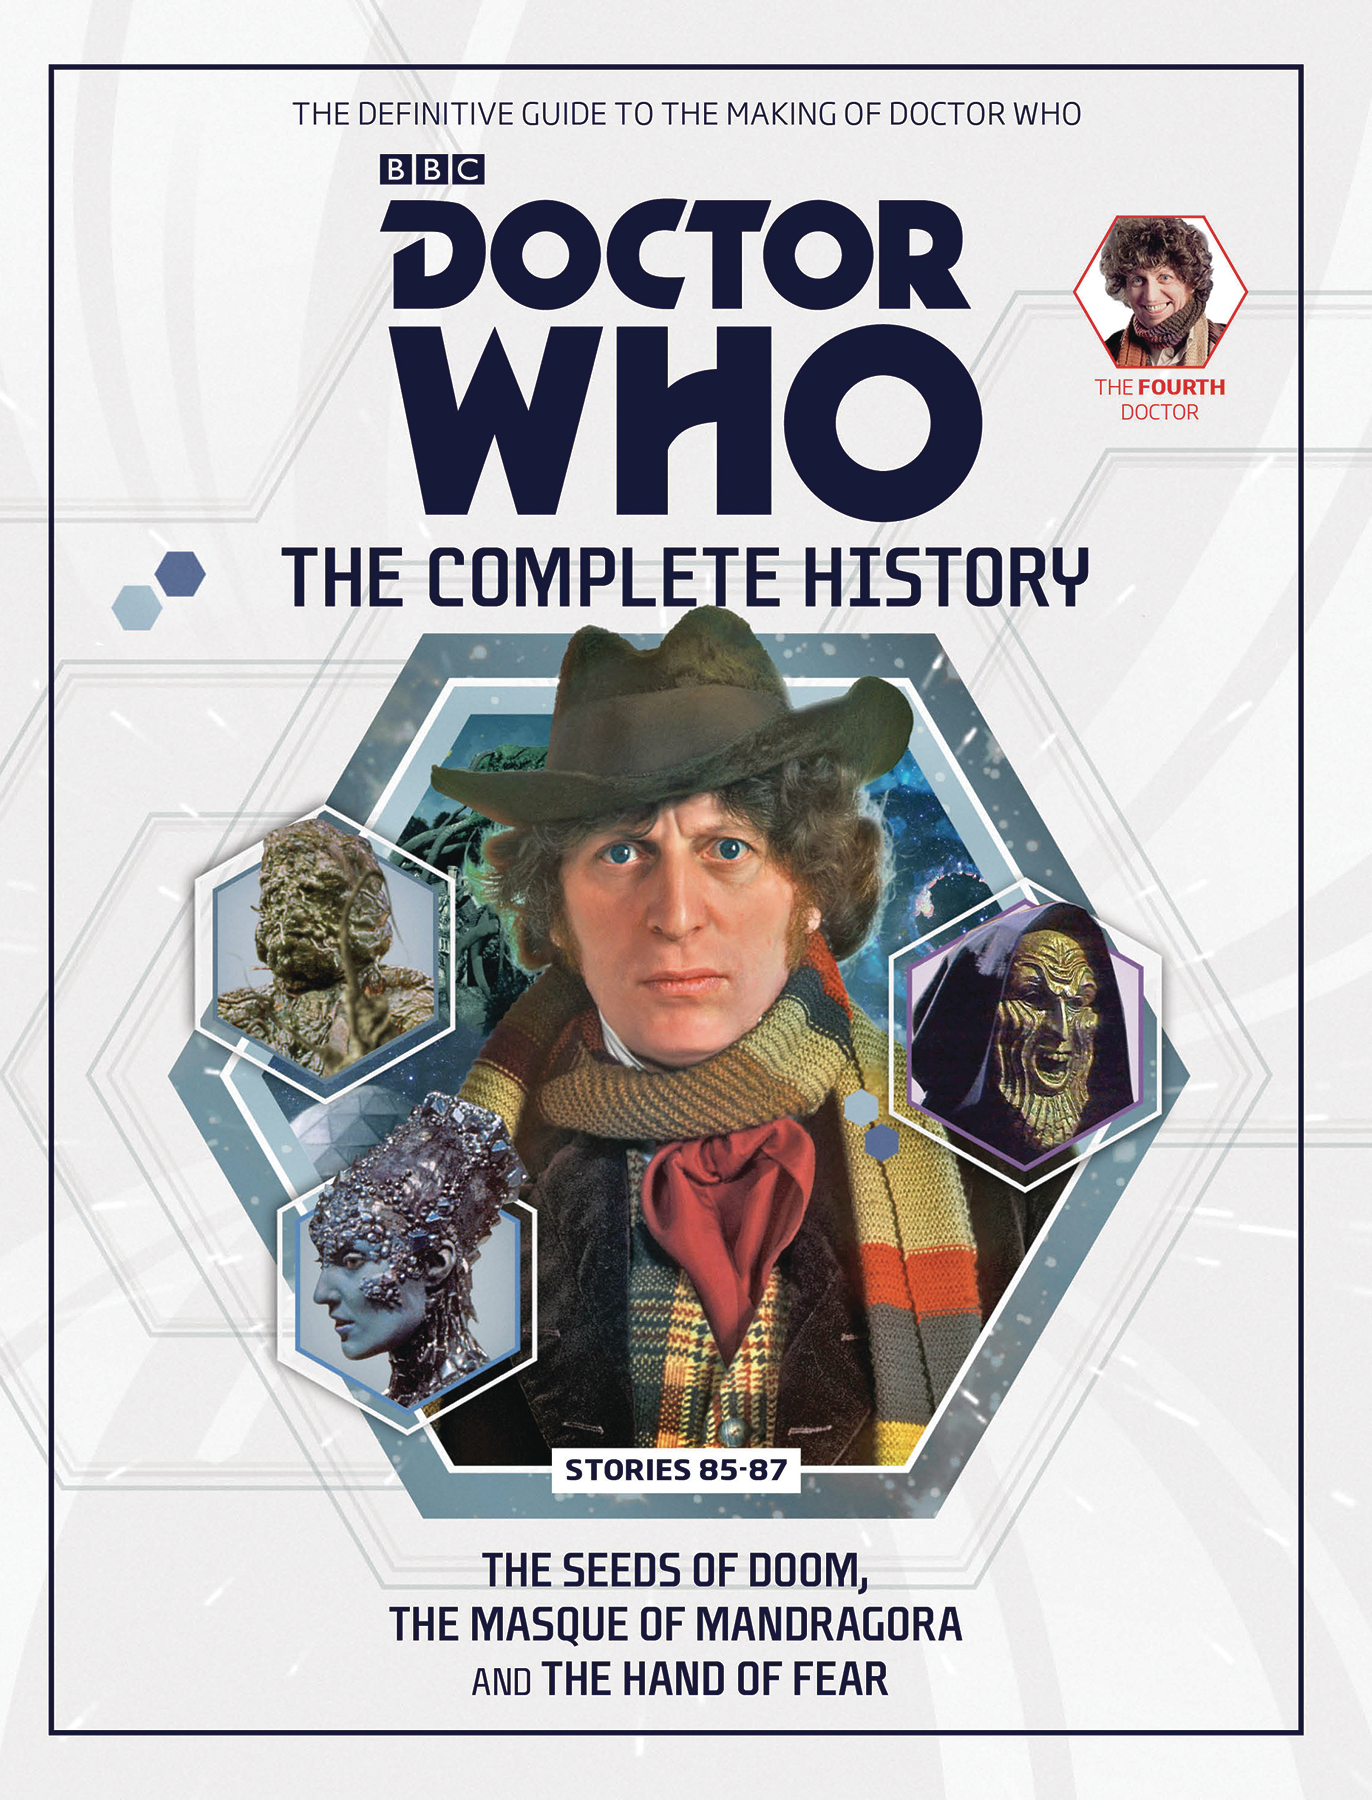 DOCTOR WHO COMP HIST HC VOL 77 4TH DOCTOR STORIES 85-87